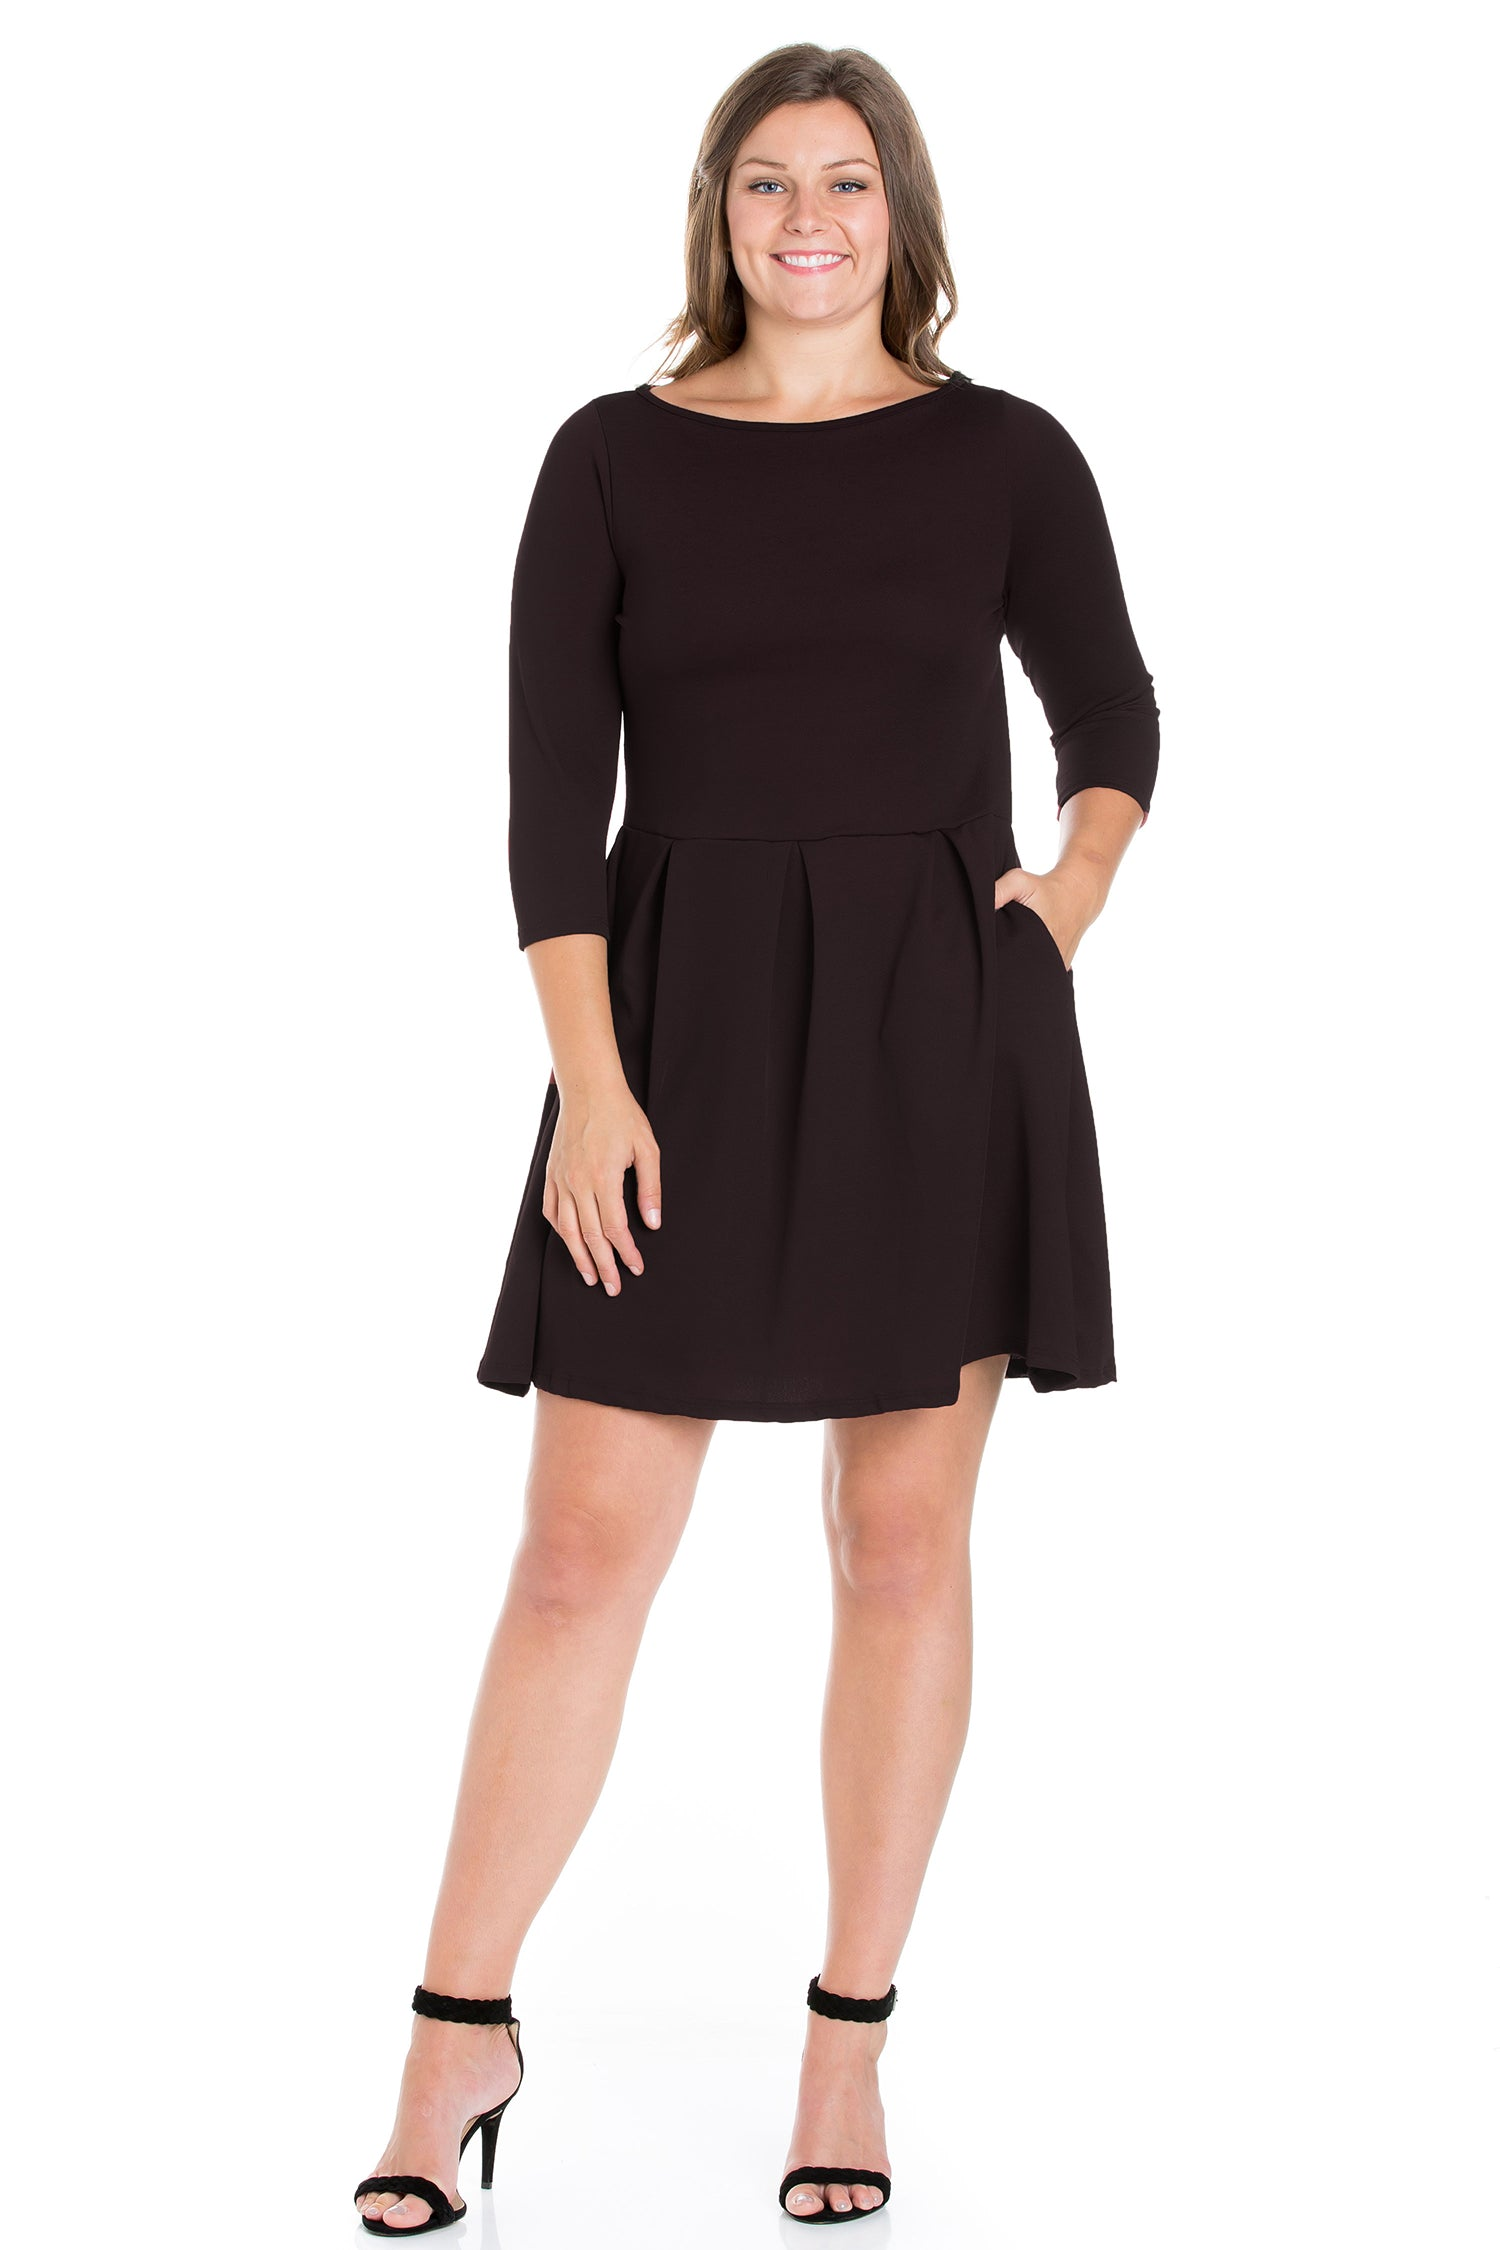 24seven Comfort Apparel Perfect Fit and Flare Plus Size Pocket Dress-DRESSES-24Seven Comfort Apparel-BLACK-1X-24/7 Comfort Apparel